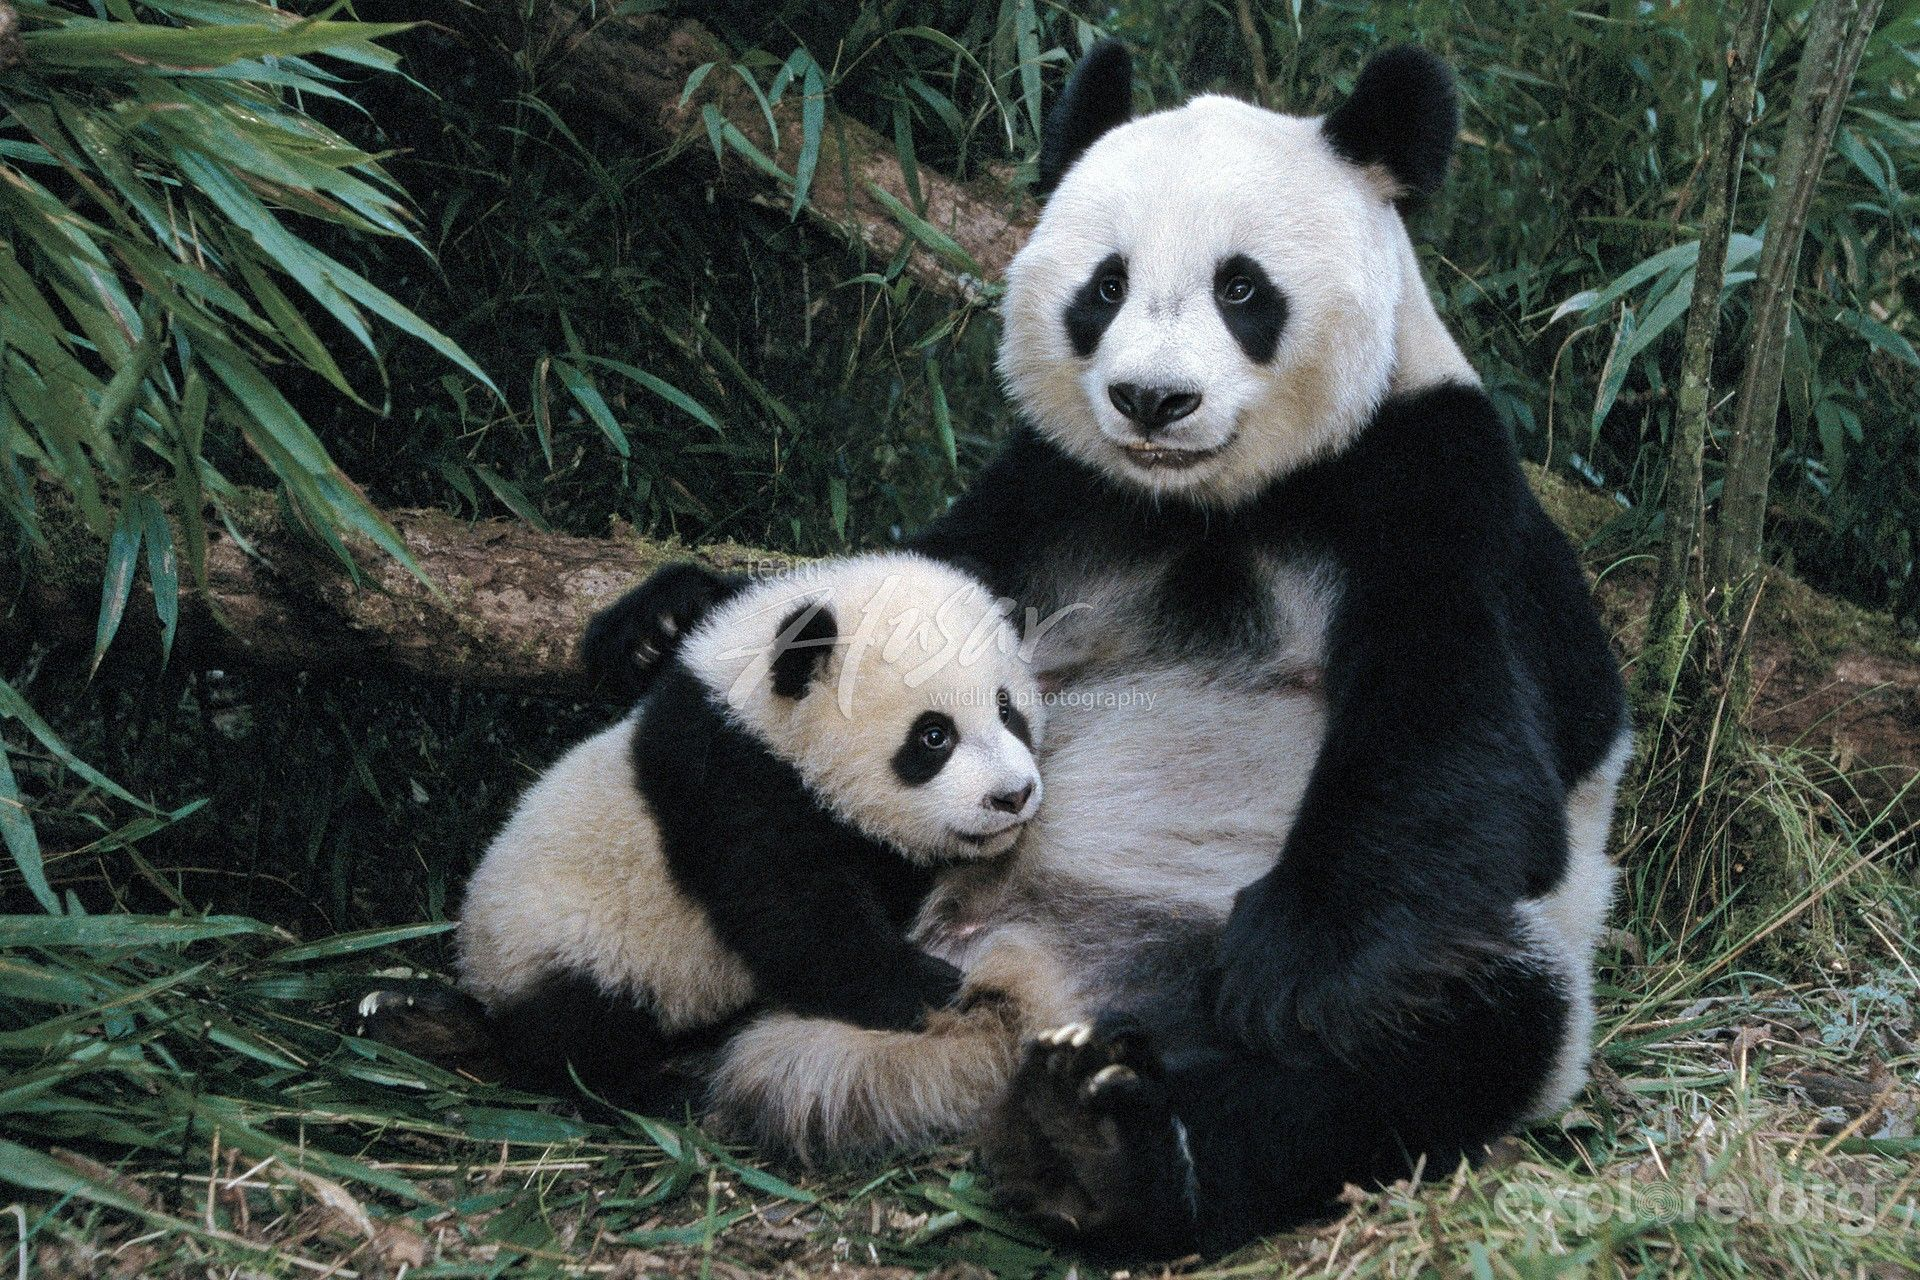 pandas pictures | Giant panda mom & cub in a bamboo forest ...